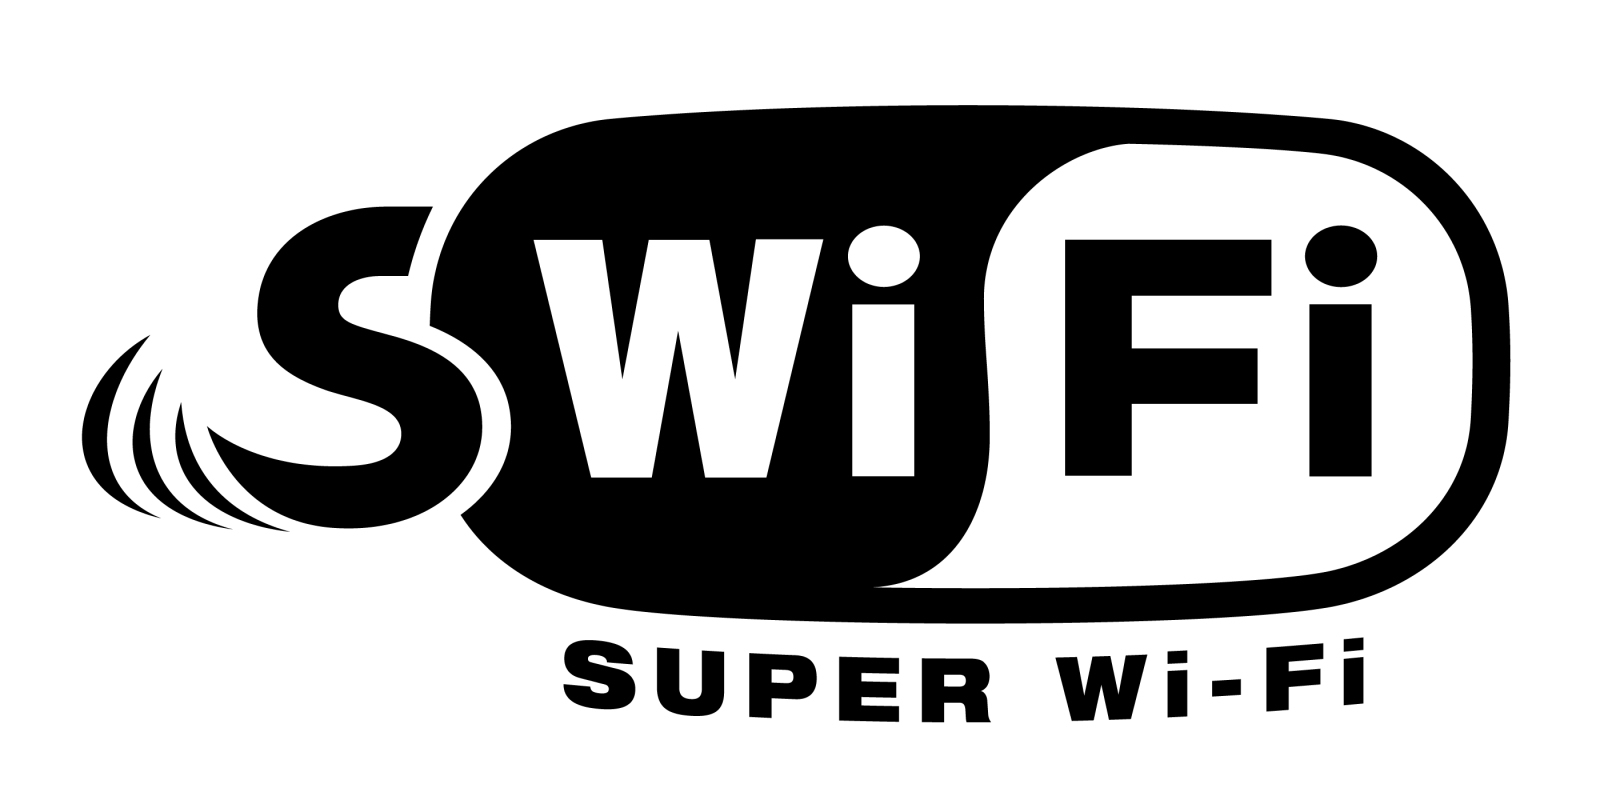 super wi fi logo HD Wallpaper